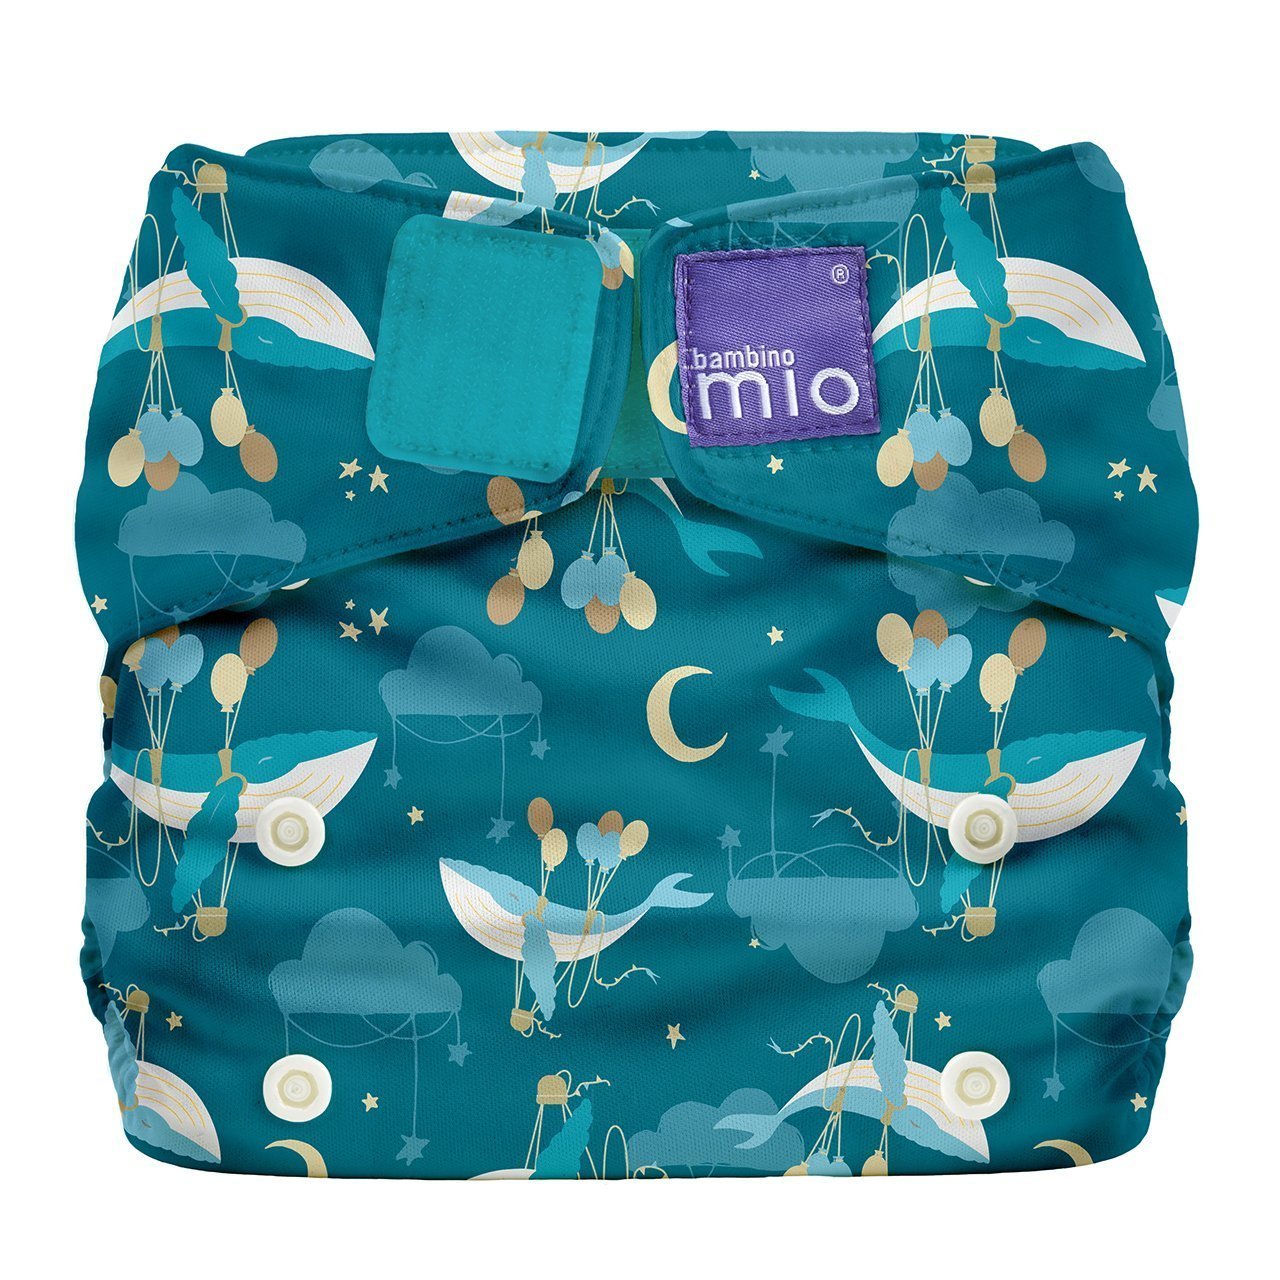 Bambino Mio: Miosolo All-in-One Nappy - Sail Away image